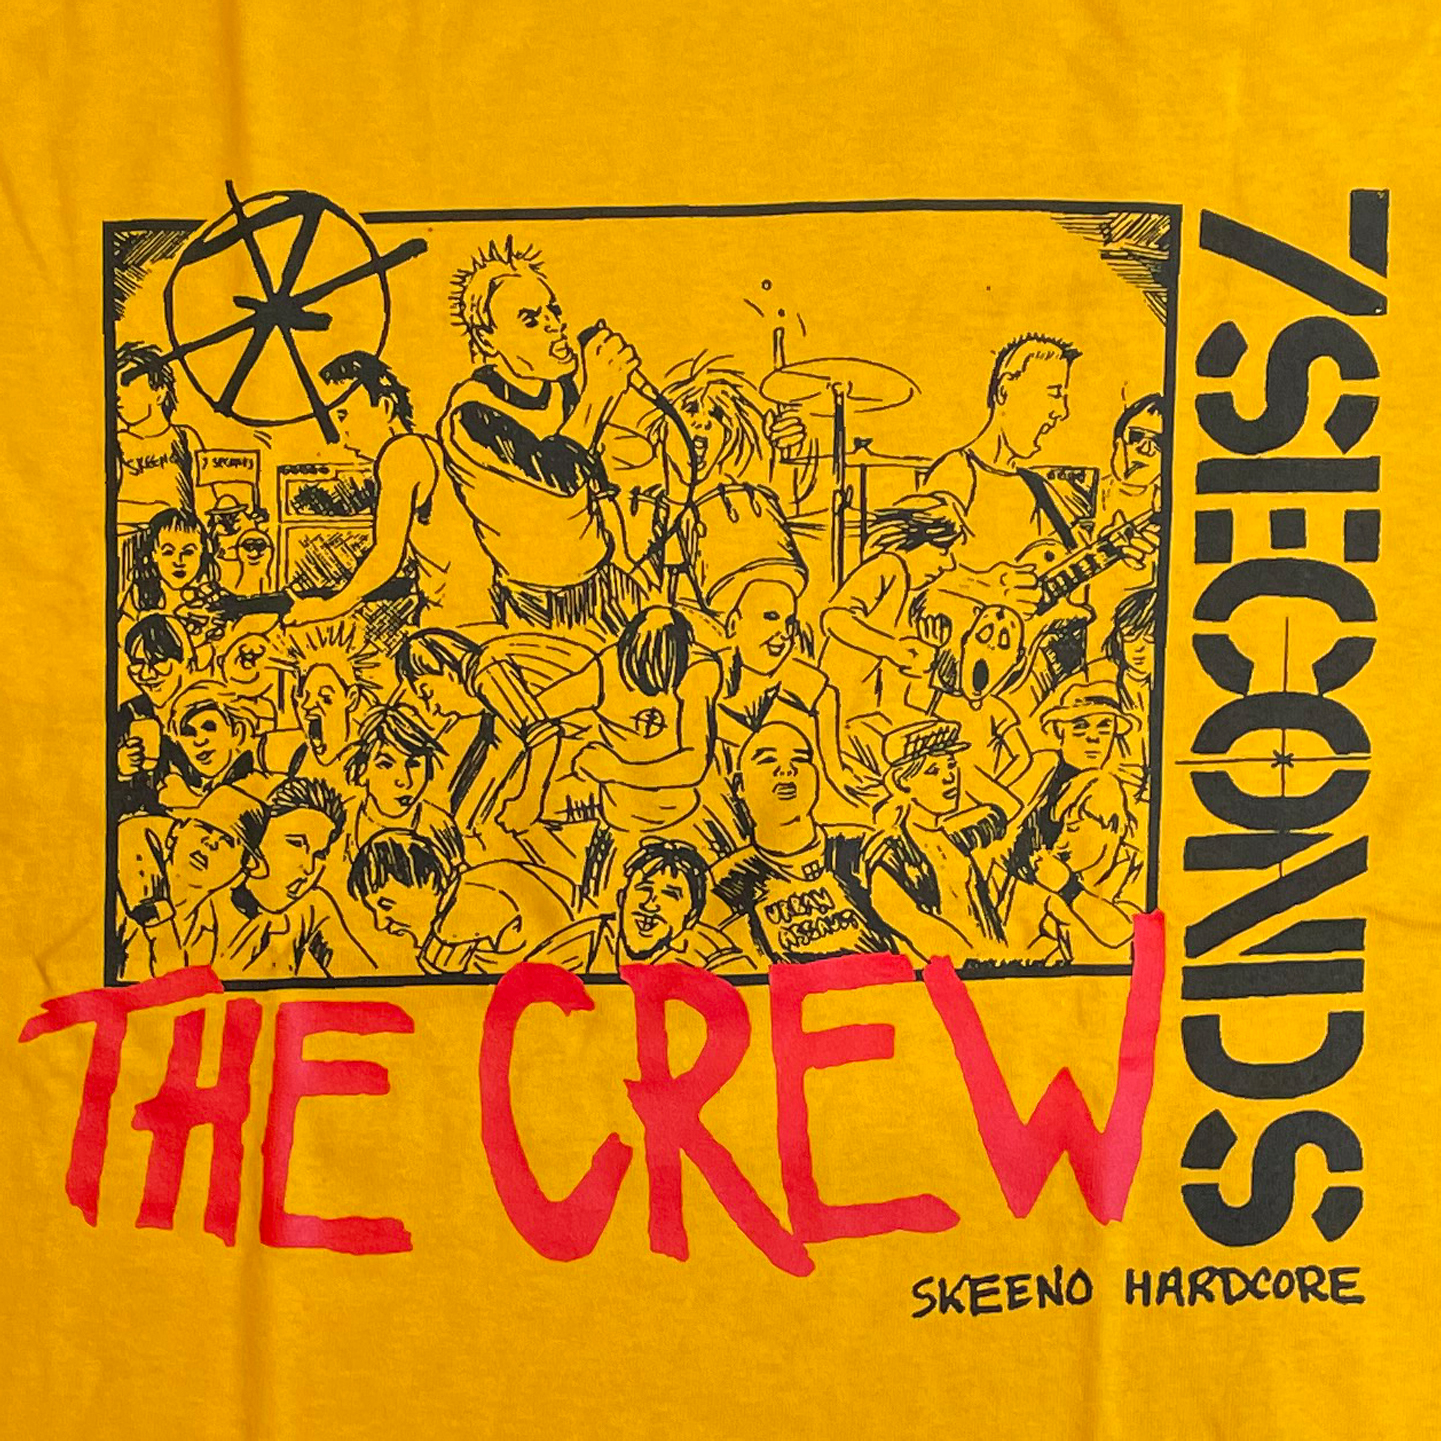 7SECONDS Tシャツ Walsby Crew オフィシャル!